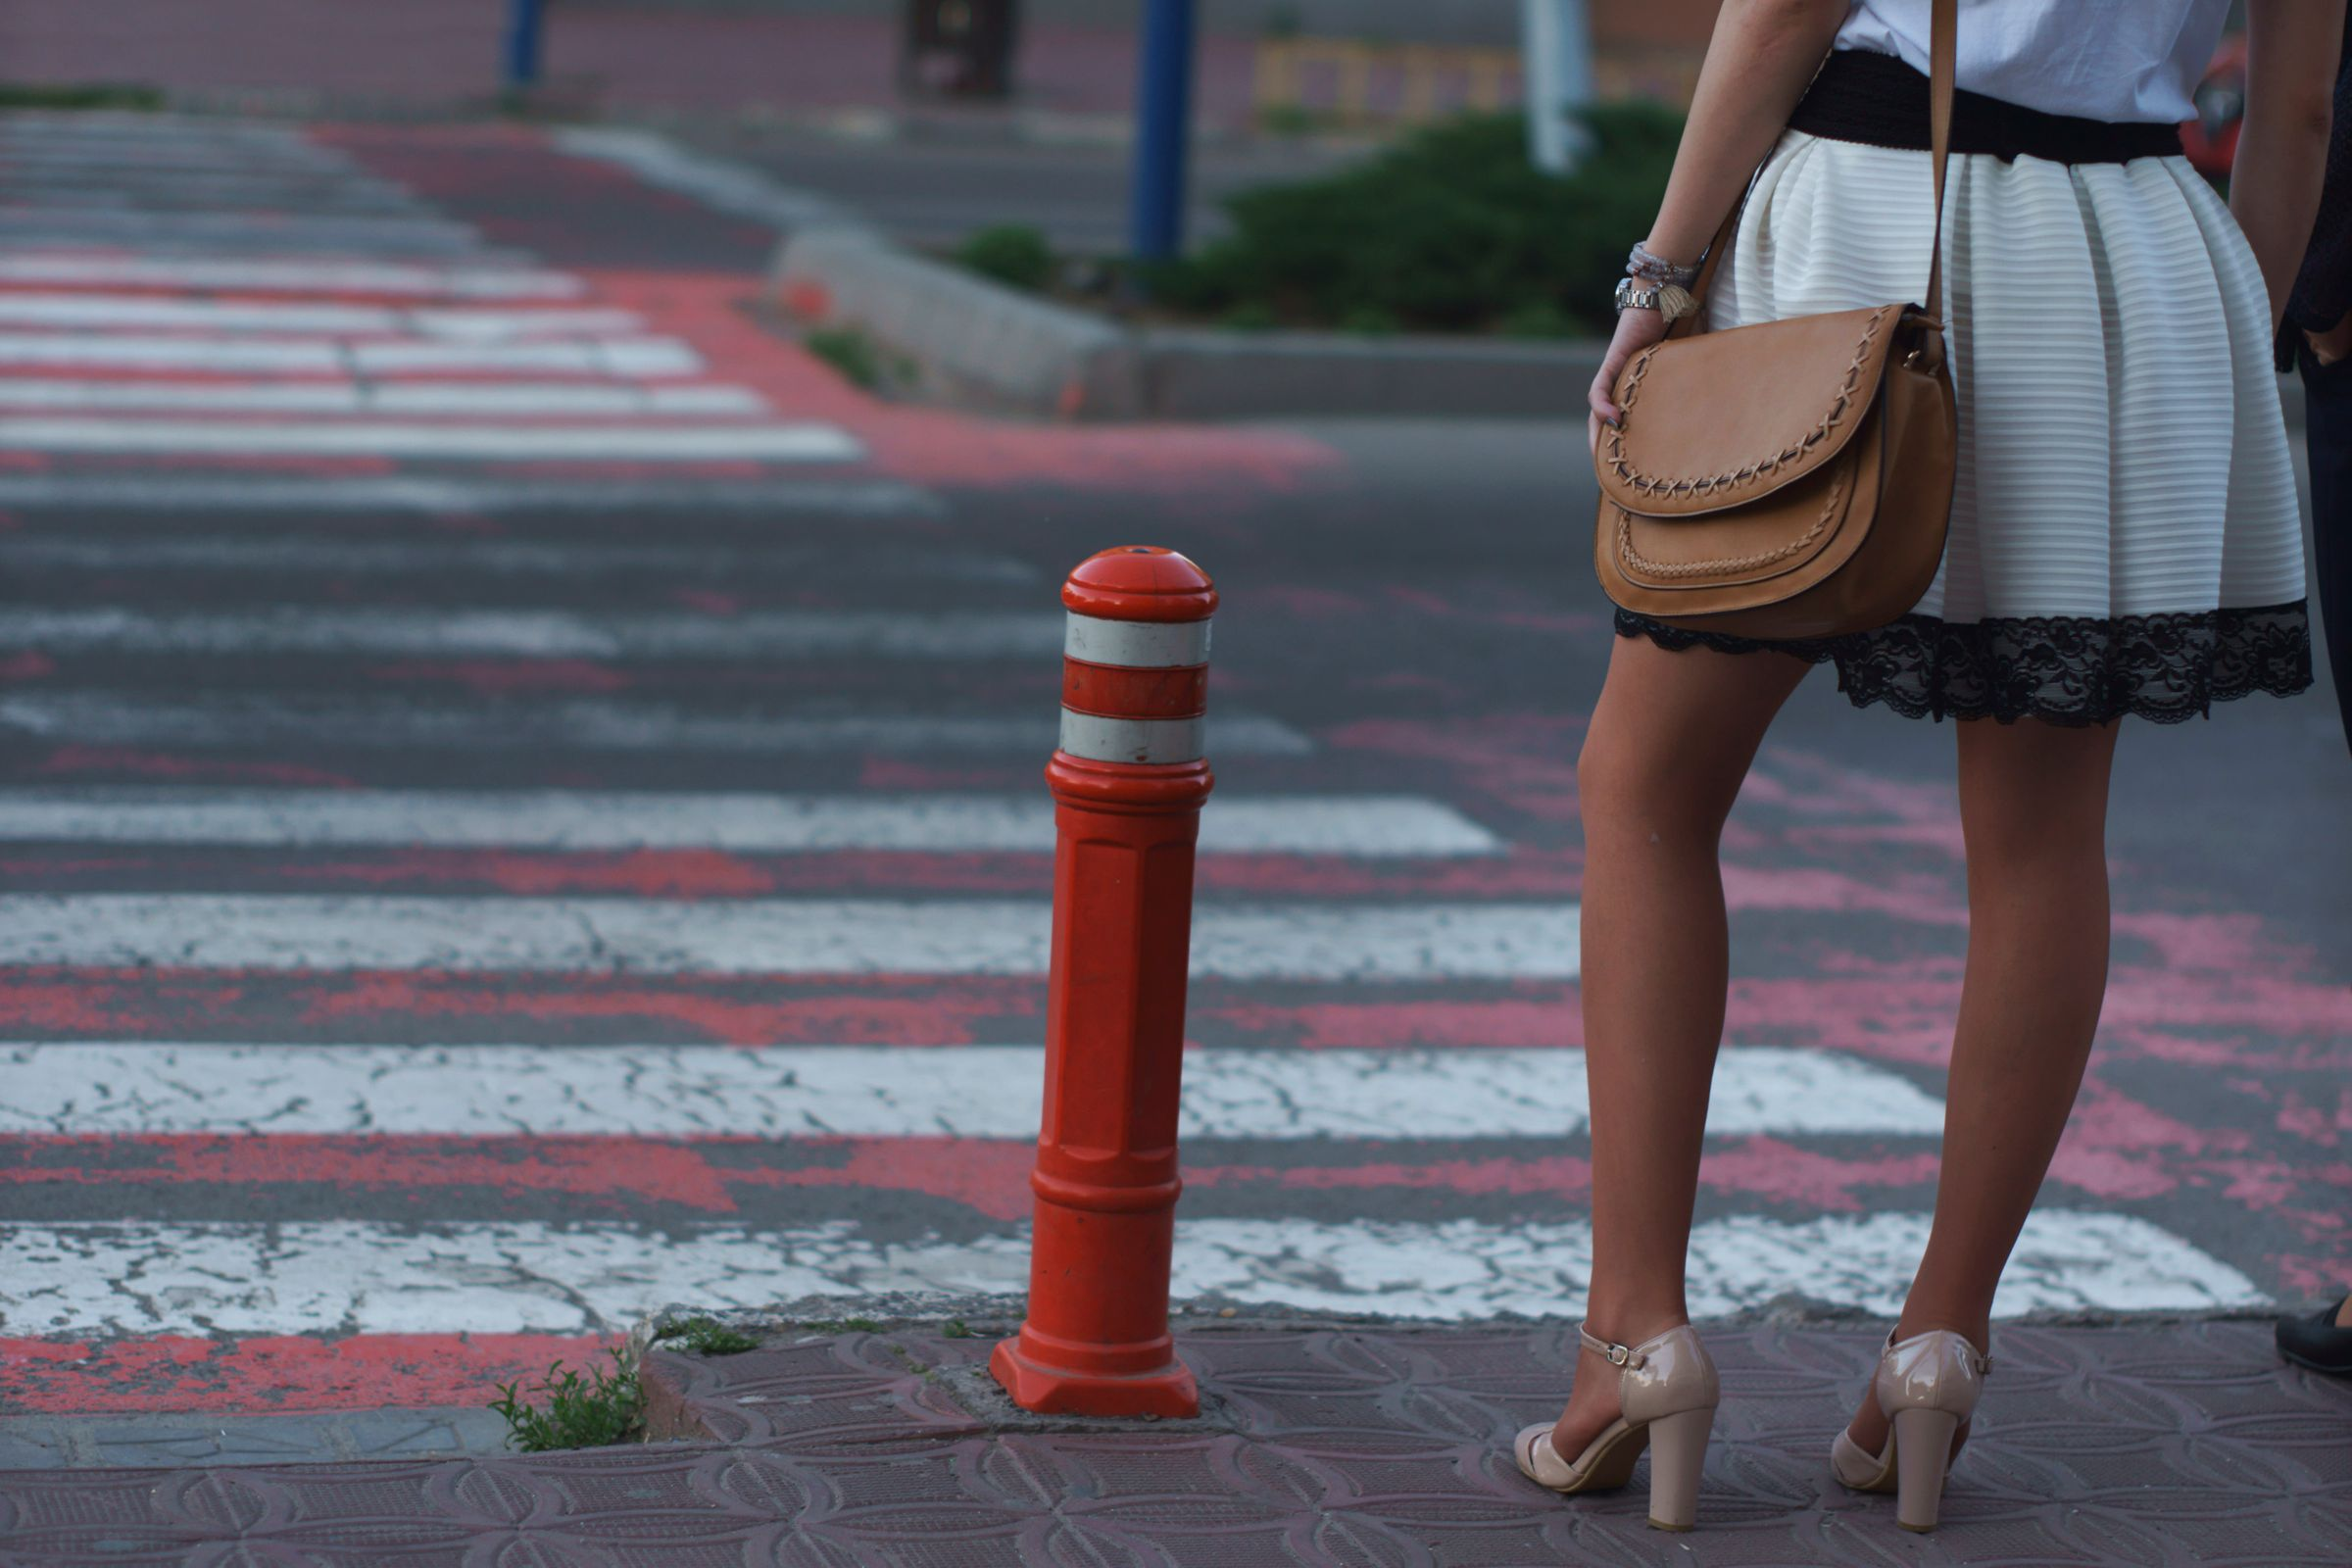 Legs at Crossing, Tulcea